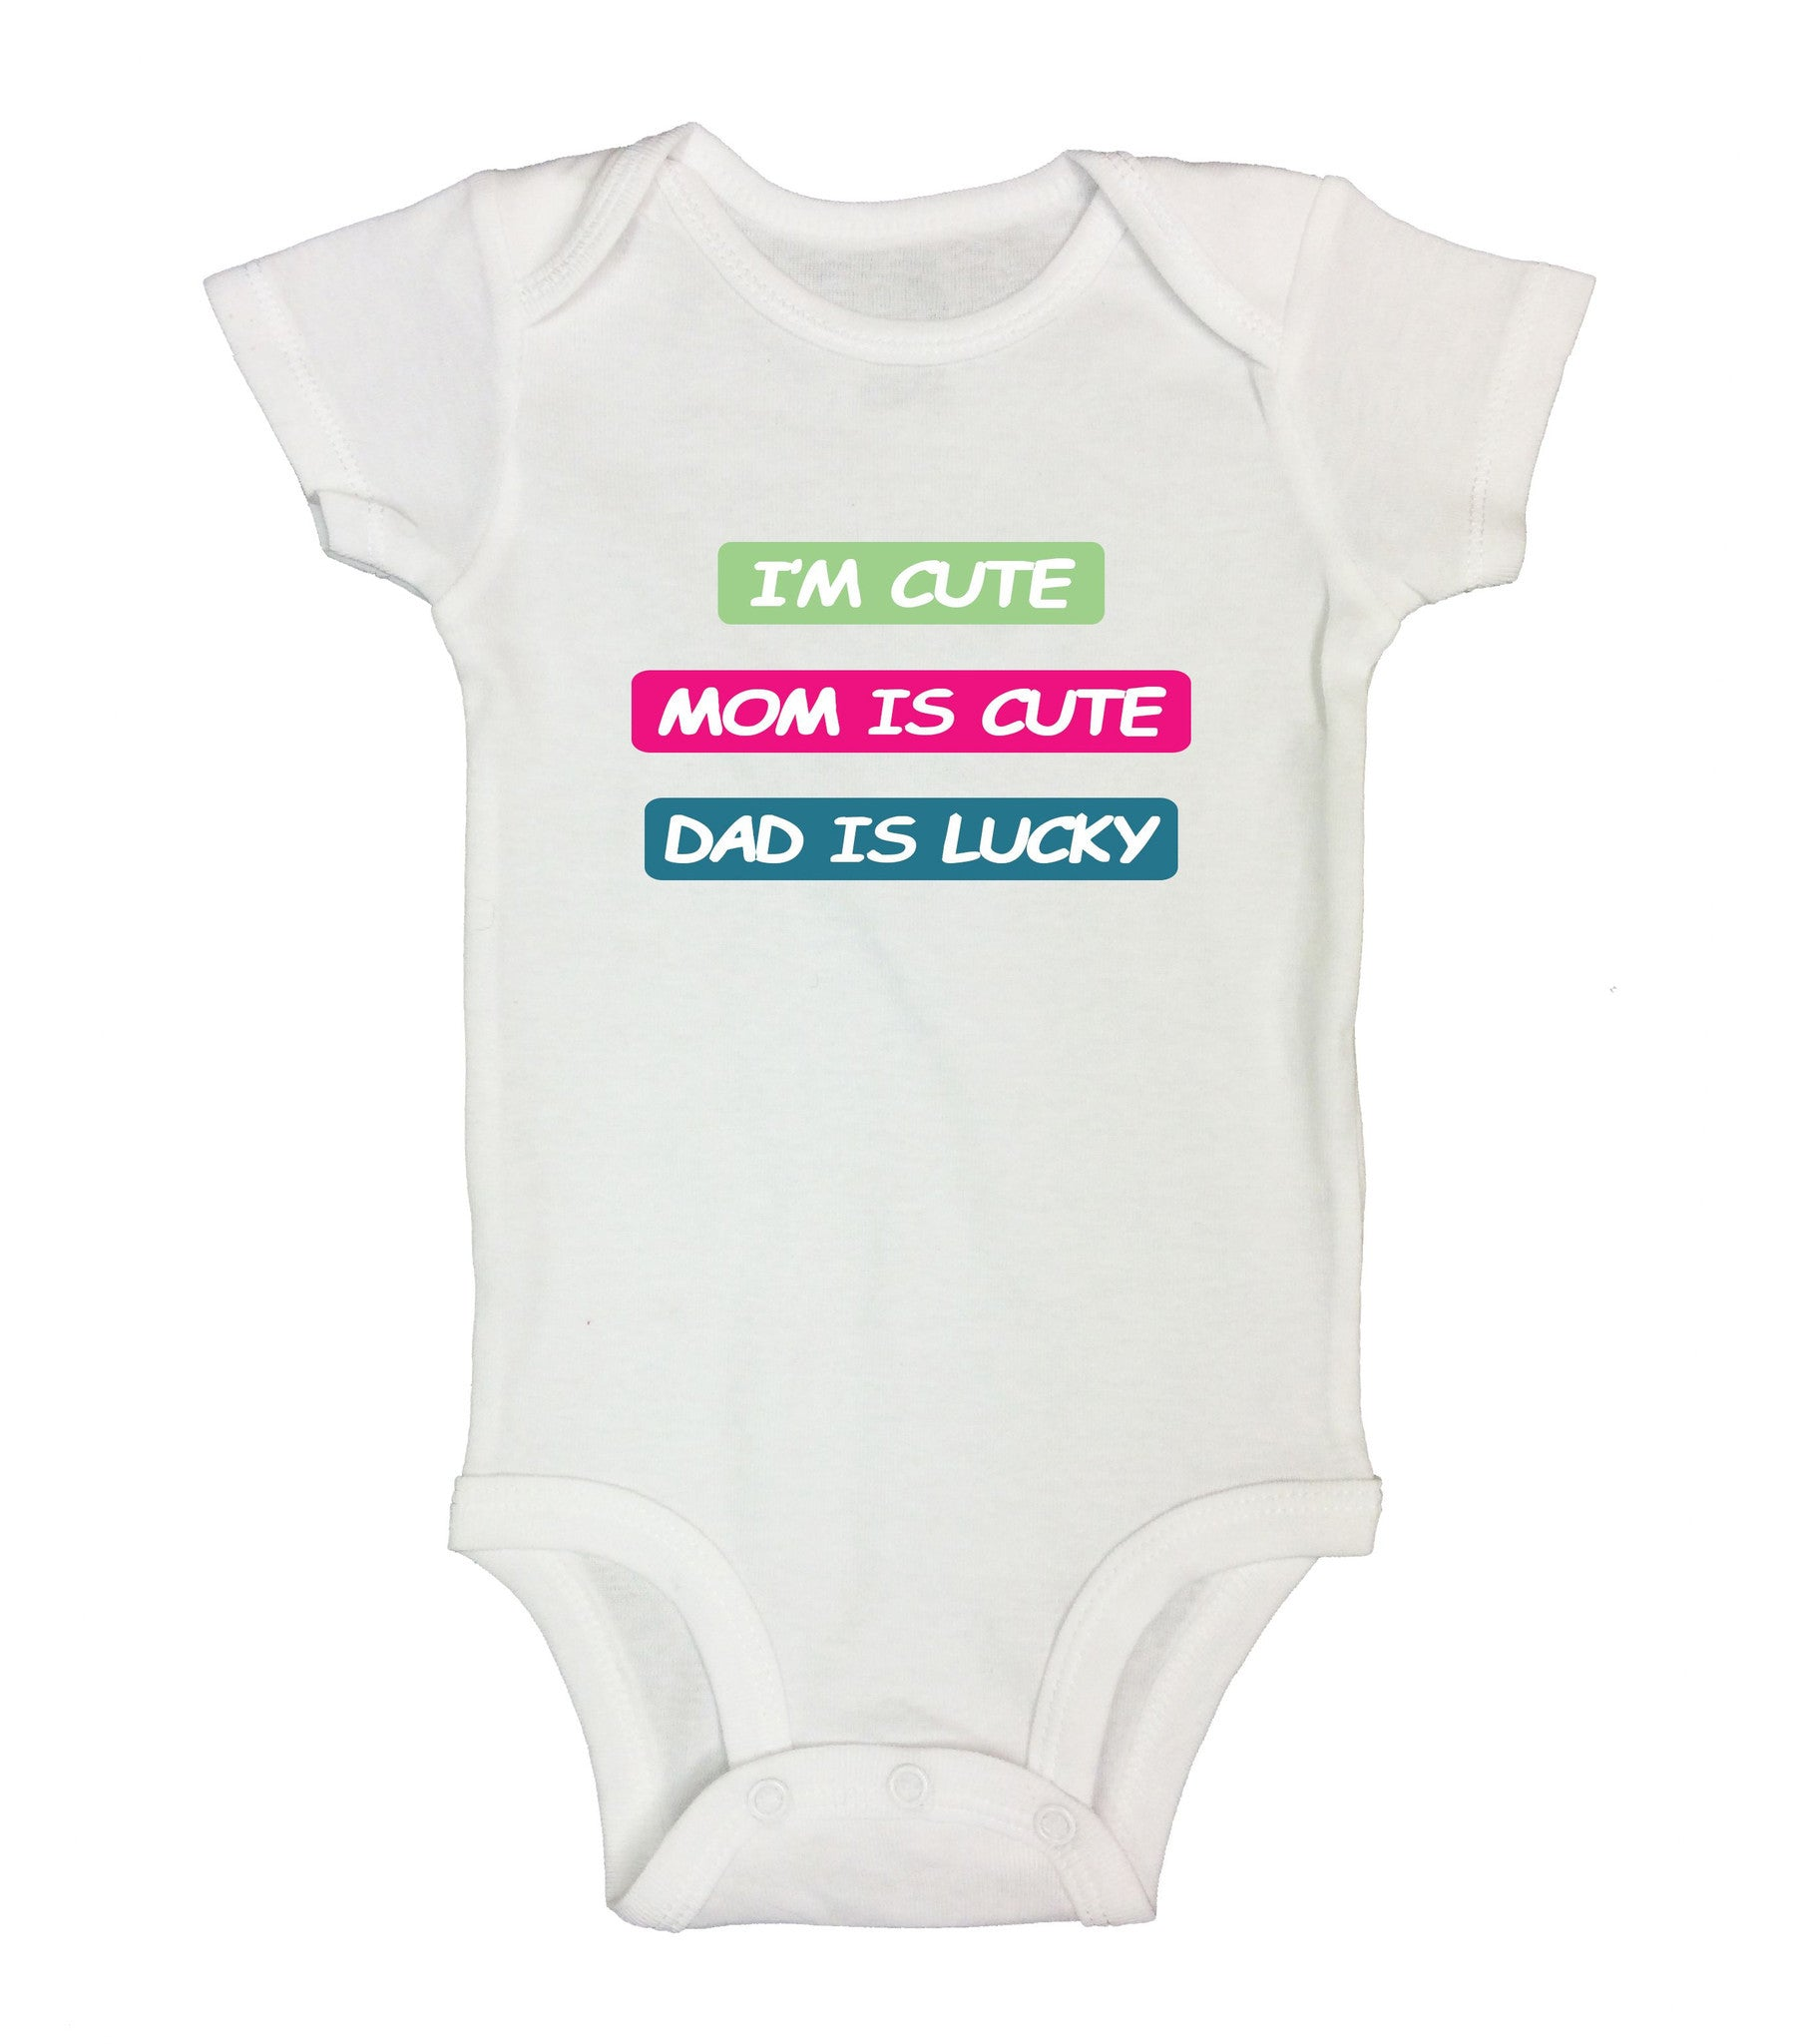 I'm Cute Mom Is Cute Dad Is Lucky Funny Kids Onesie - B14 - Funny Shirts Tank Tops Burnouts and Triblends  - 2